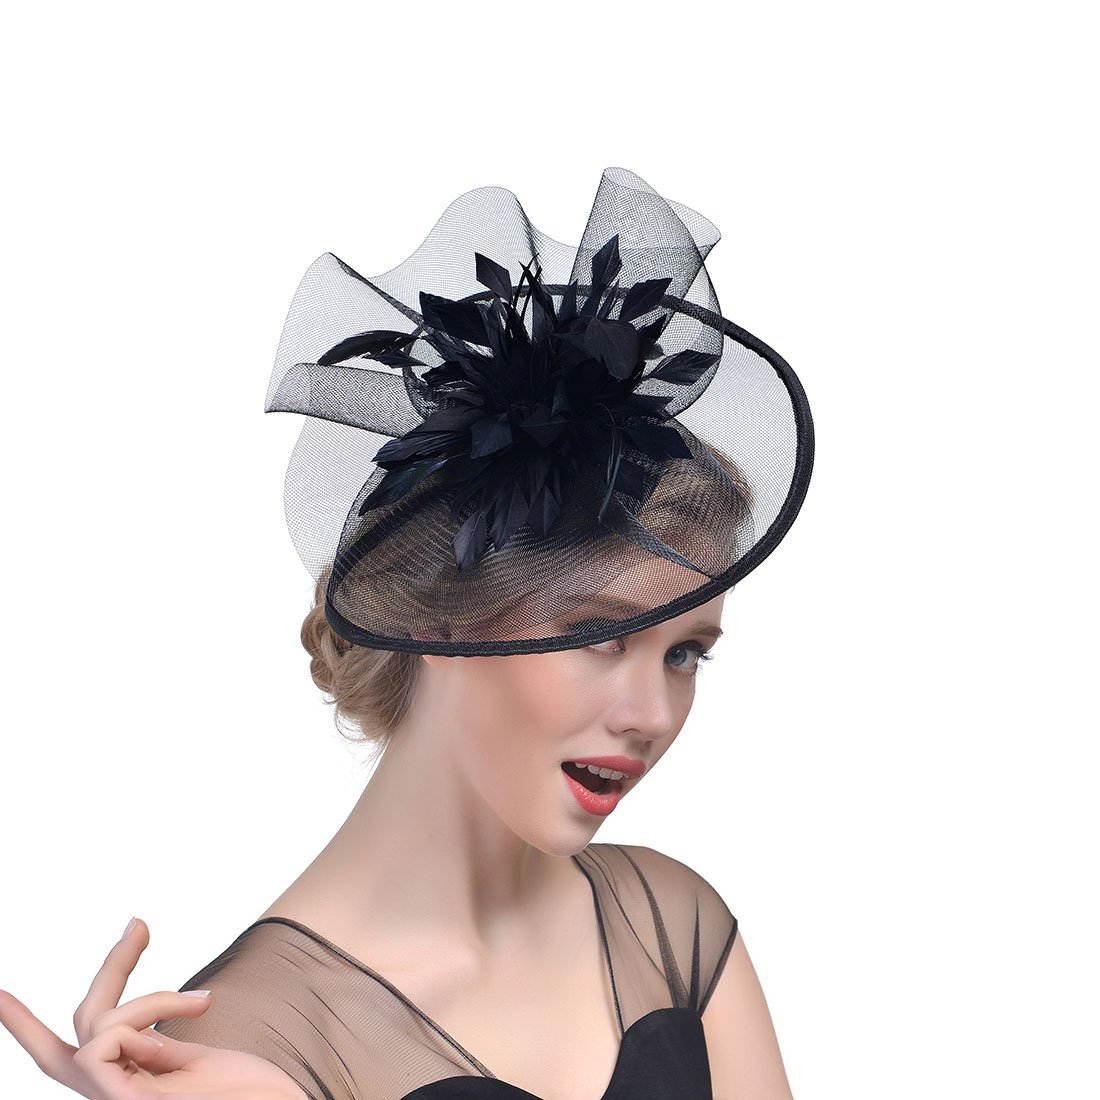 Sunshine girl Women Wedding Bridal Fascinator Veil Hair Ornament Headdress(Black)